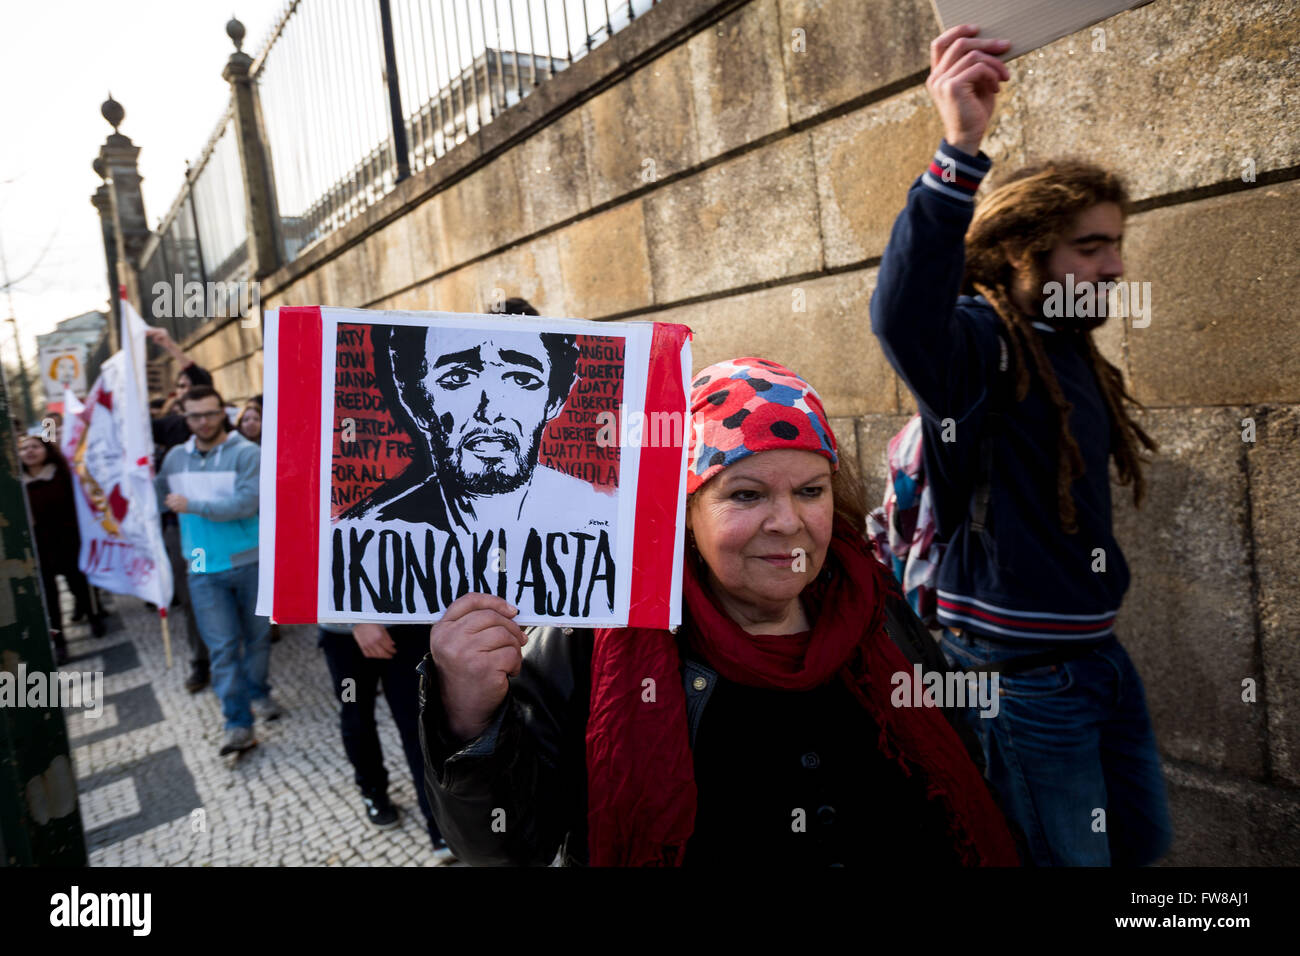 Porto, Portugal. 01st Apr, 2016. About a hundred people gathered today at 16h Friday at the Boavista roundabout - Stock Image